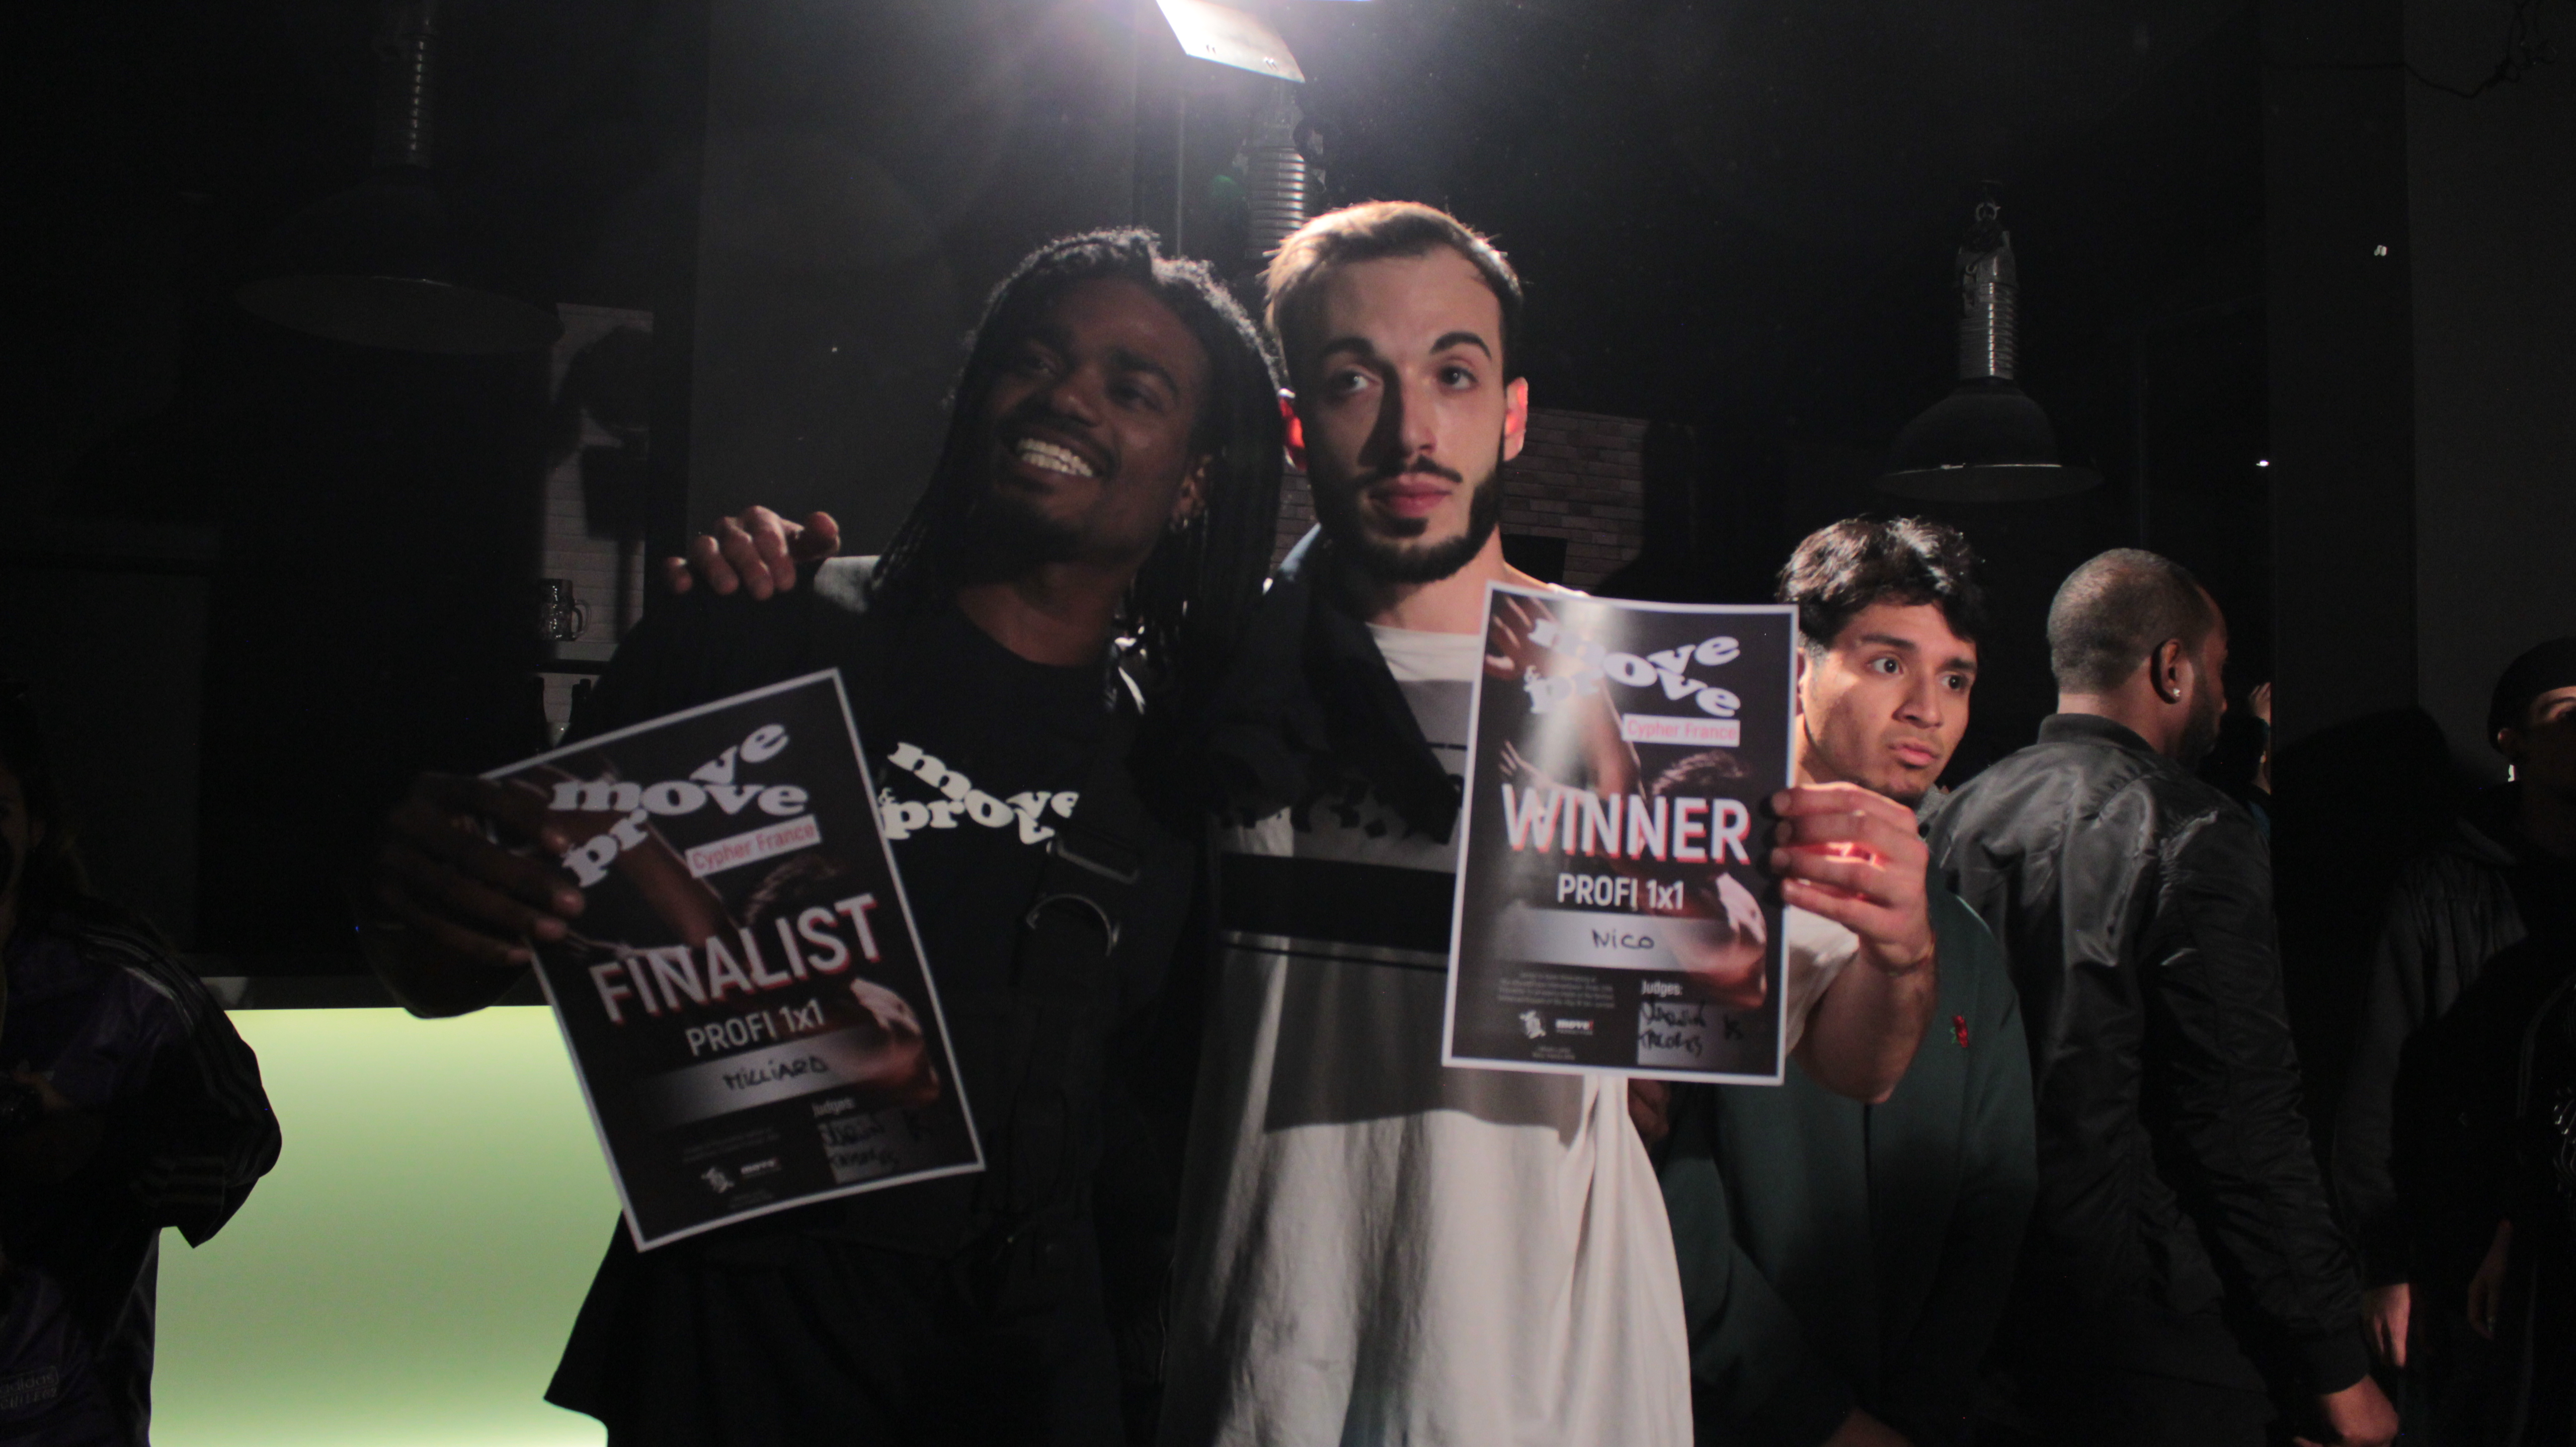 Milliard (2nd place / Rk) and Nico (1st place, Rootless) after Move&Prove France Cypher final in Paris